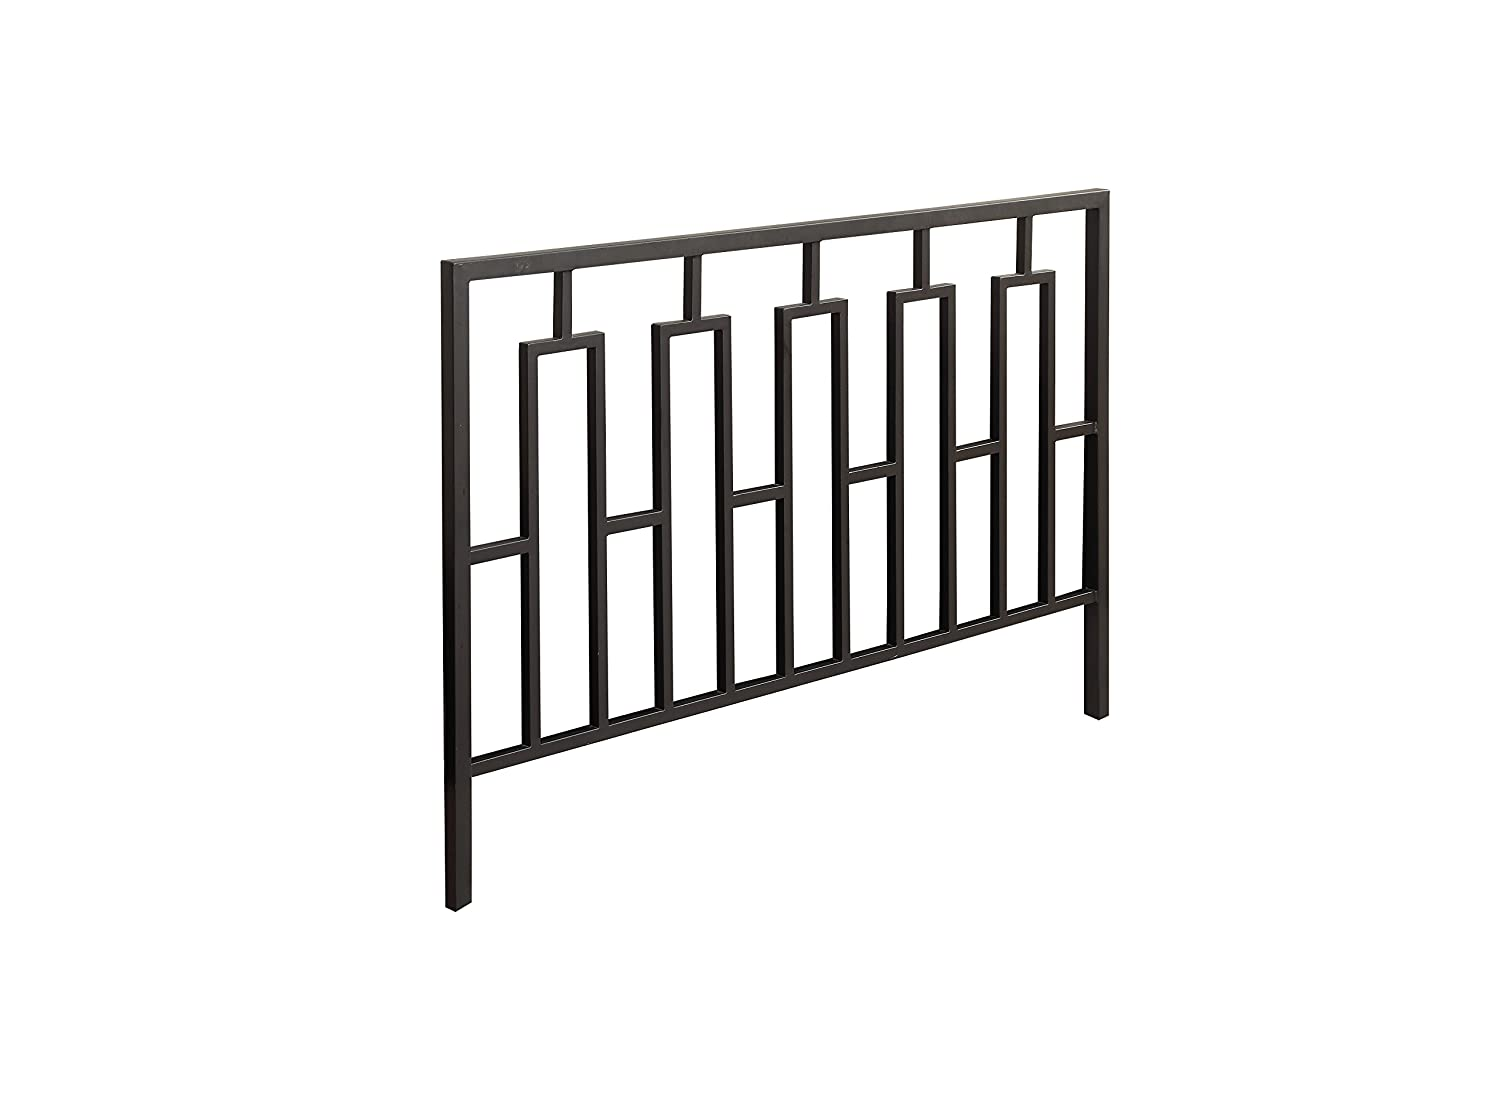 Monarch Specialties Contemporary Combo Head/Footboard, Queen/Full, Satin Black I 2616Q